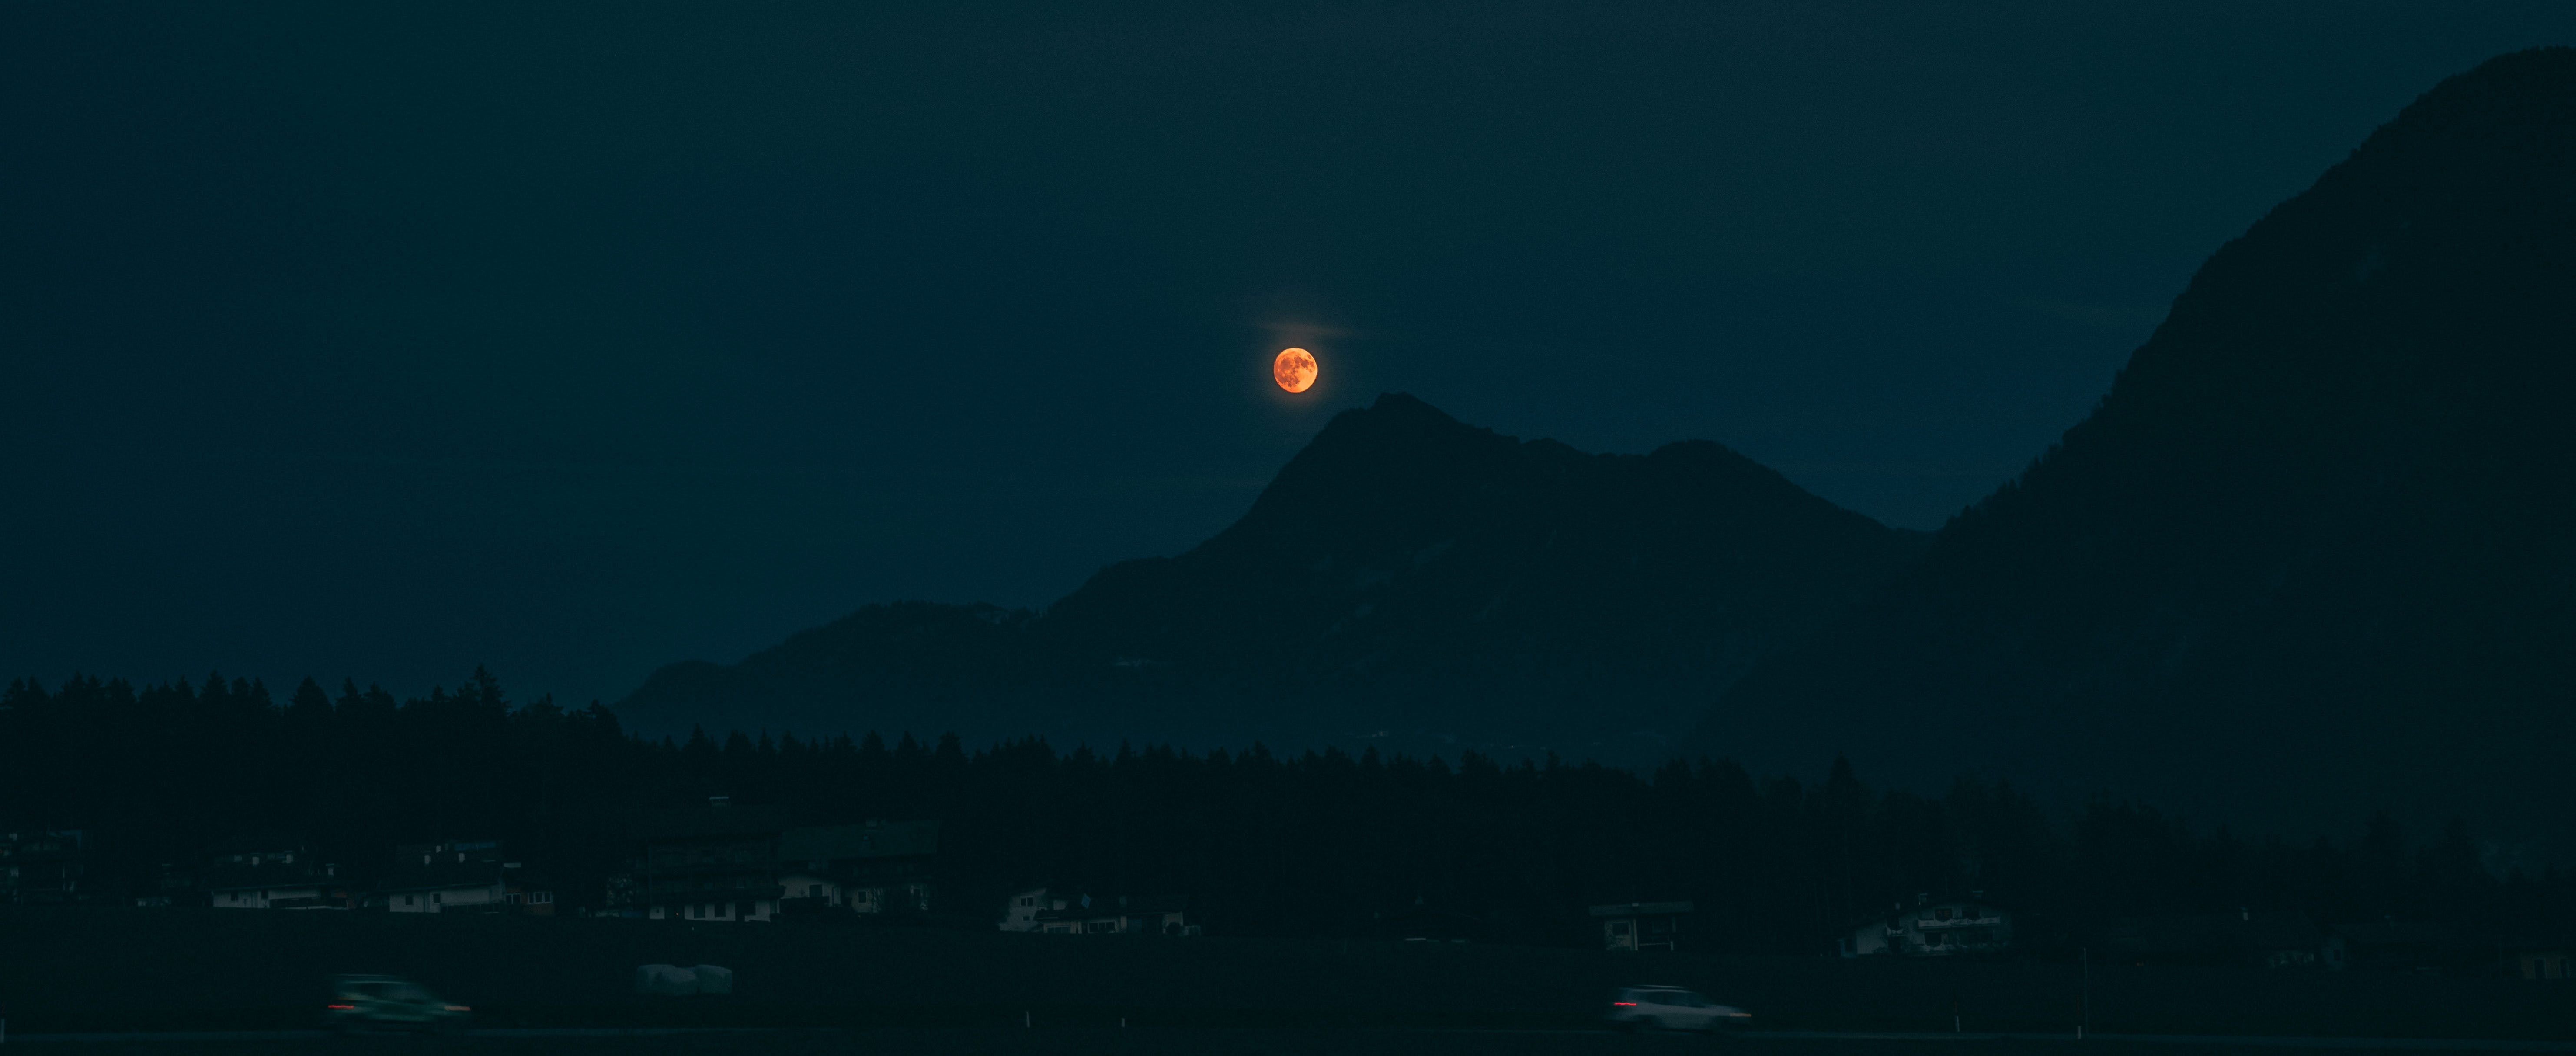 Free stock photo of 4k wallpaper, austria, background, blood moon